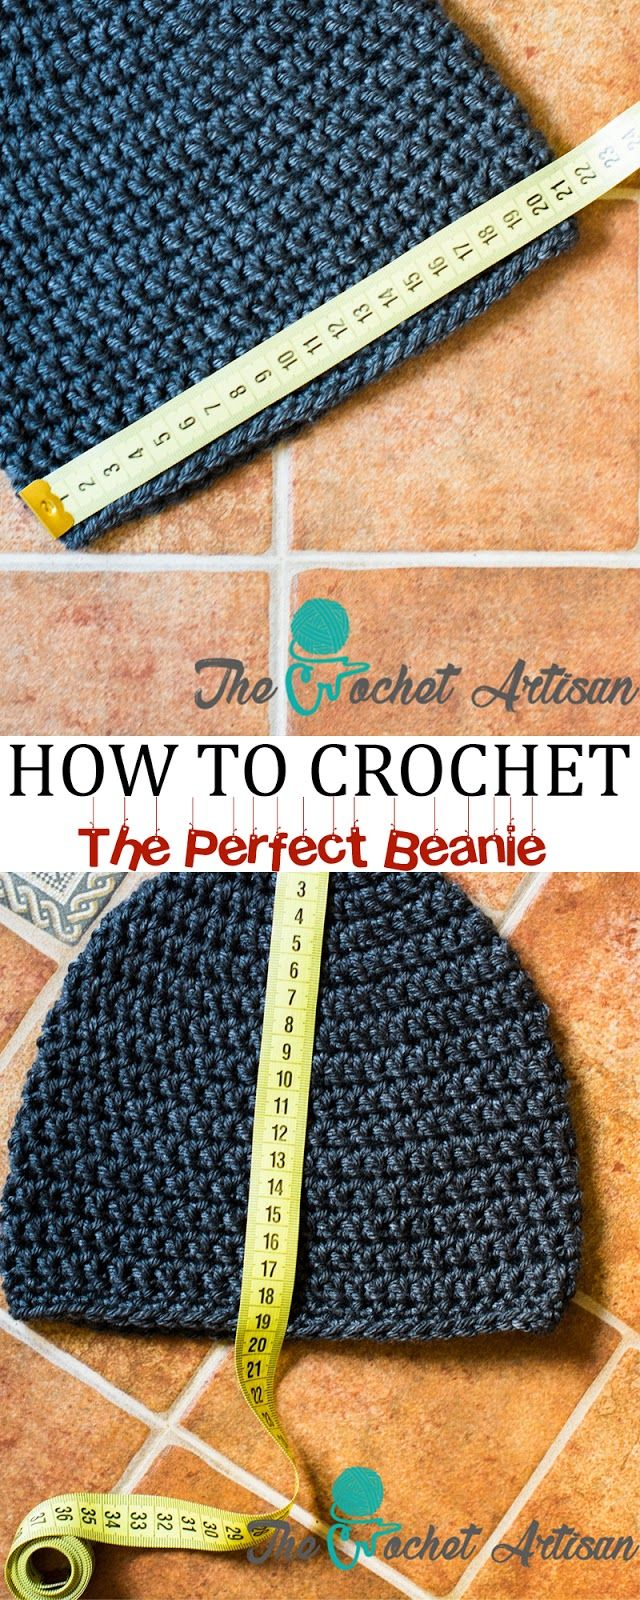 7a3ab1a9b2334 Hello and thank you for stopping by The Crochet Artisan™! Here you will find